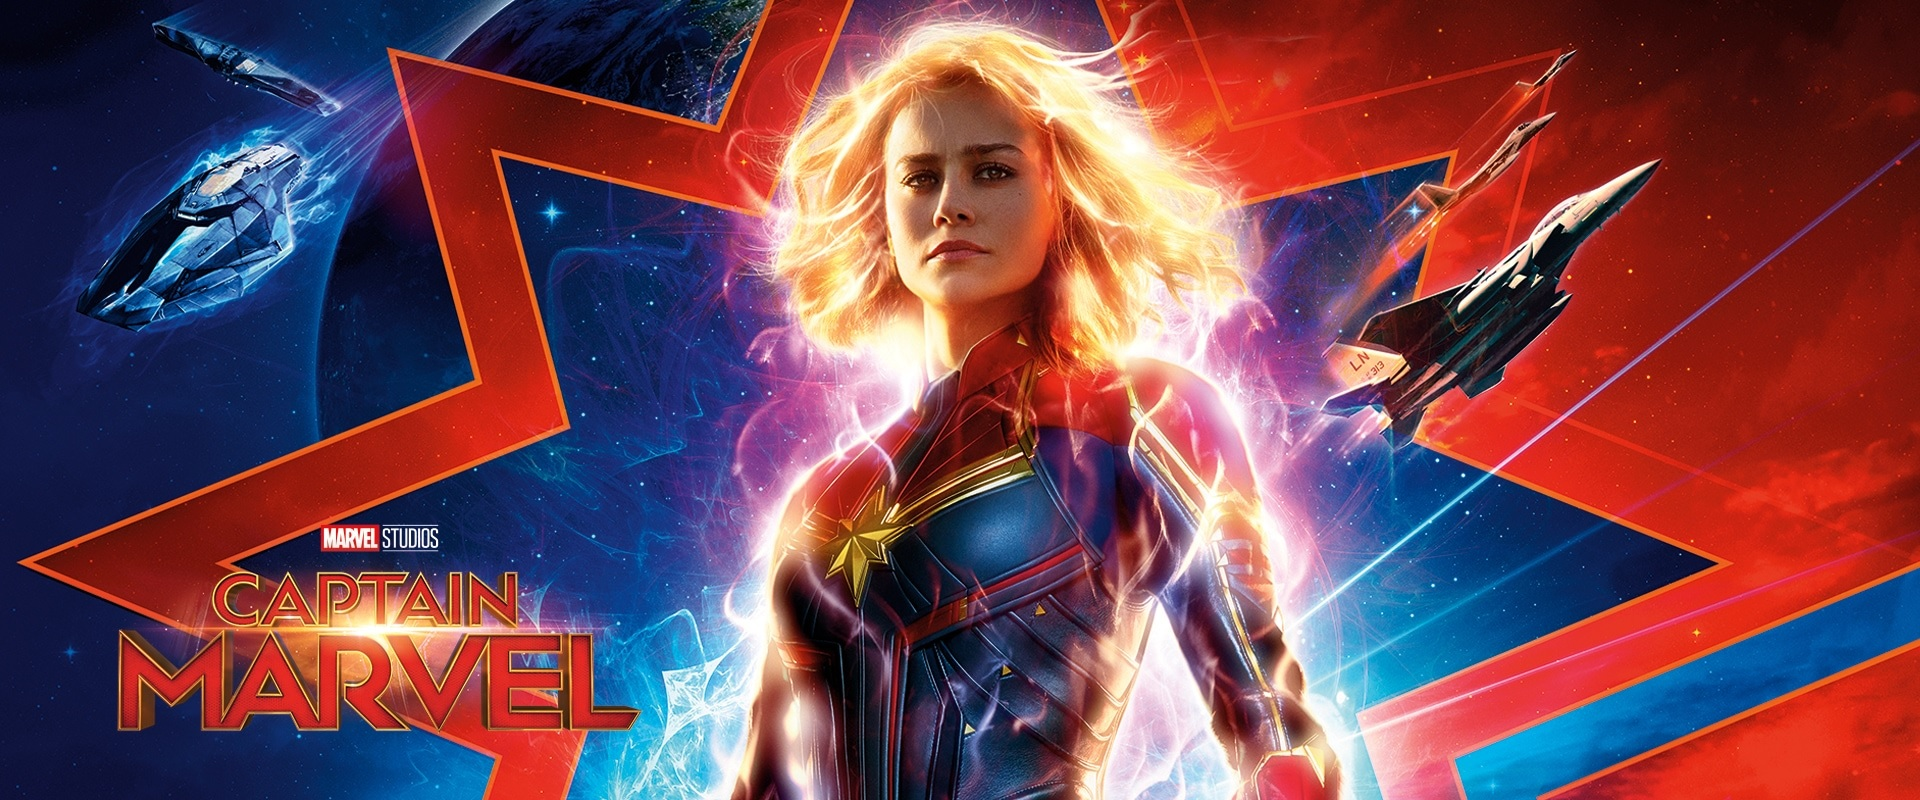 CAPTAINMARVELCD0